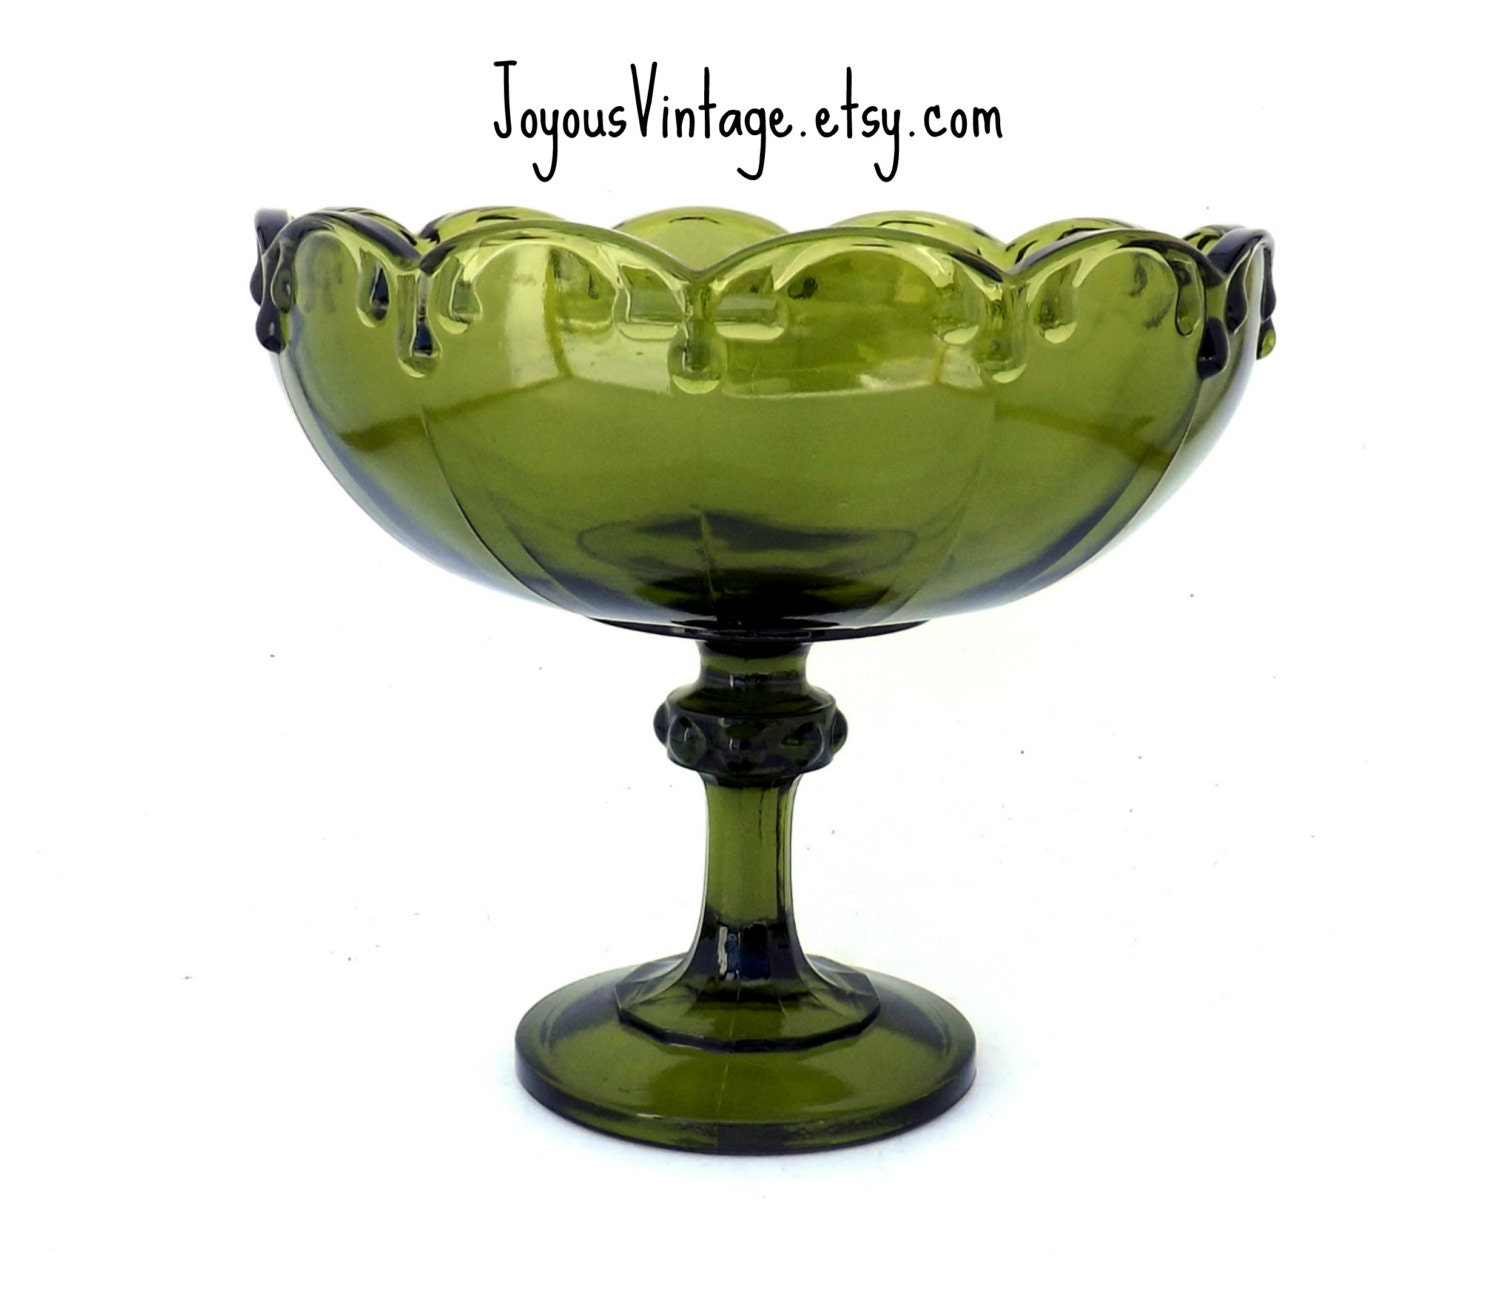 Vintage green indiana glass teardrop pedestal compote bowl wedding gift table centerpiece - Kitchen table centerpiece bowls ...